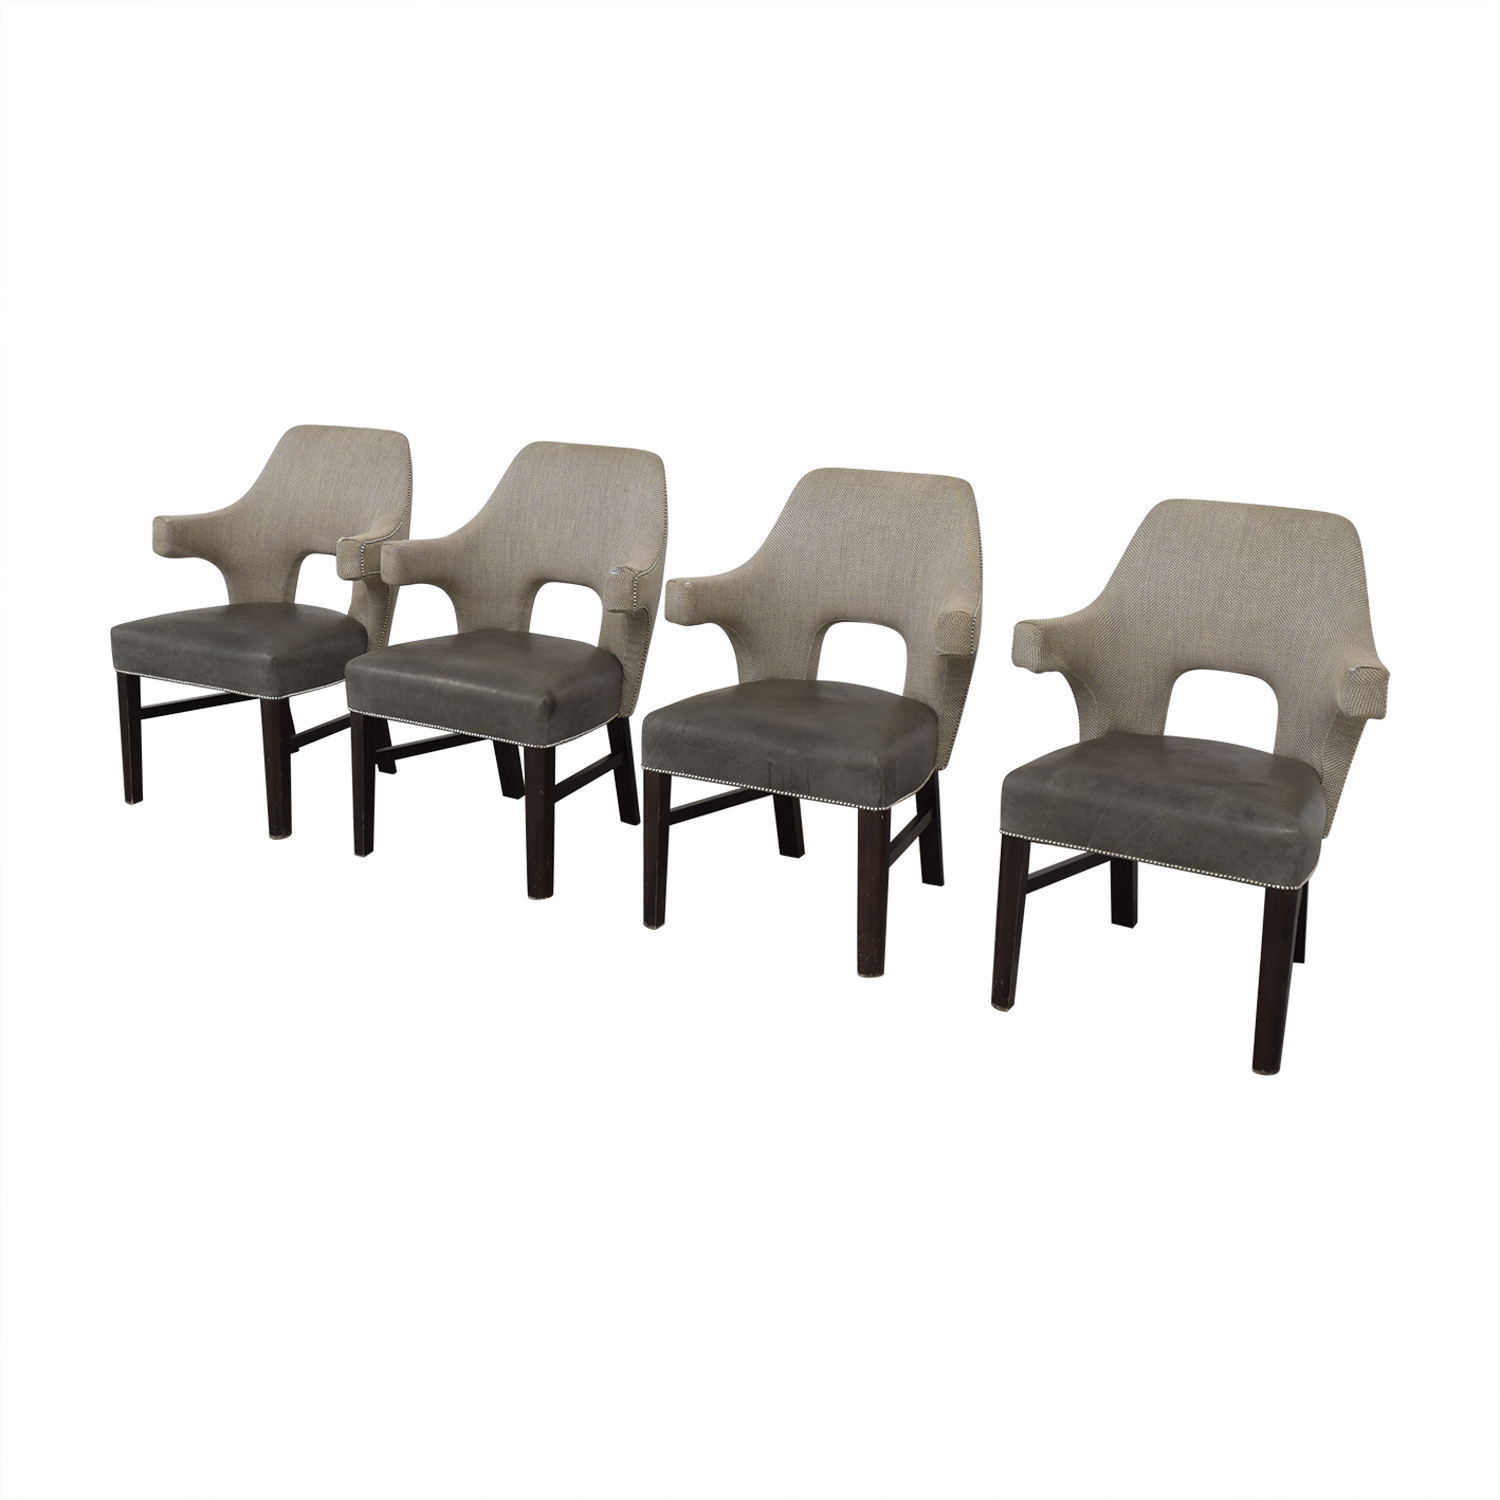 buy Thom Filicia Modern Dining Chairs Thom Filicia Chairs